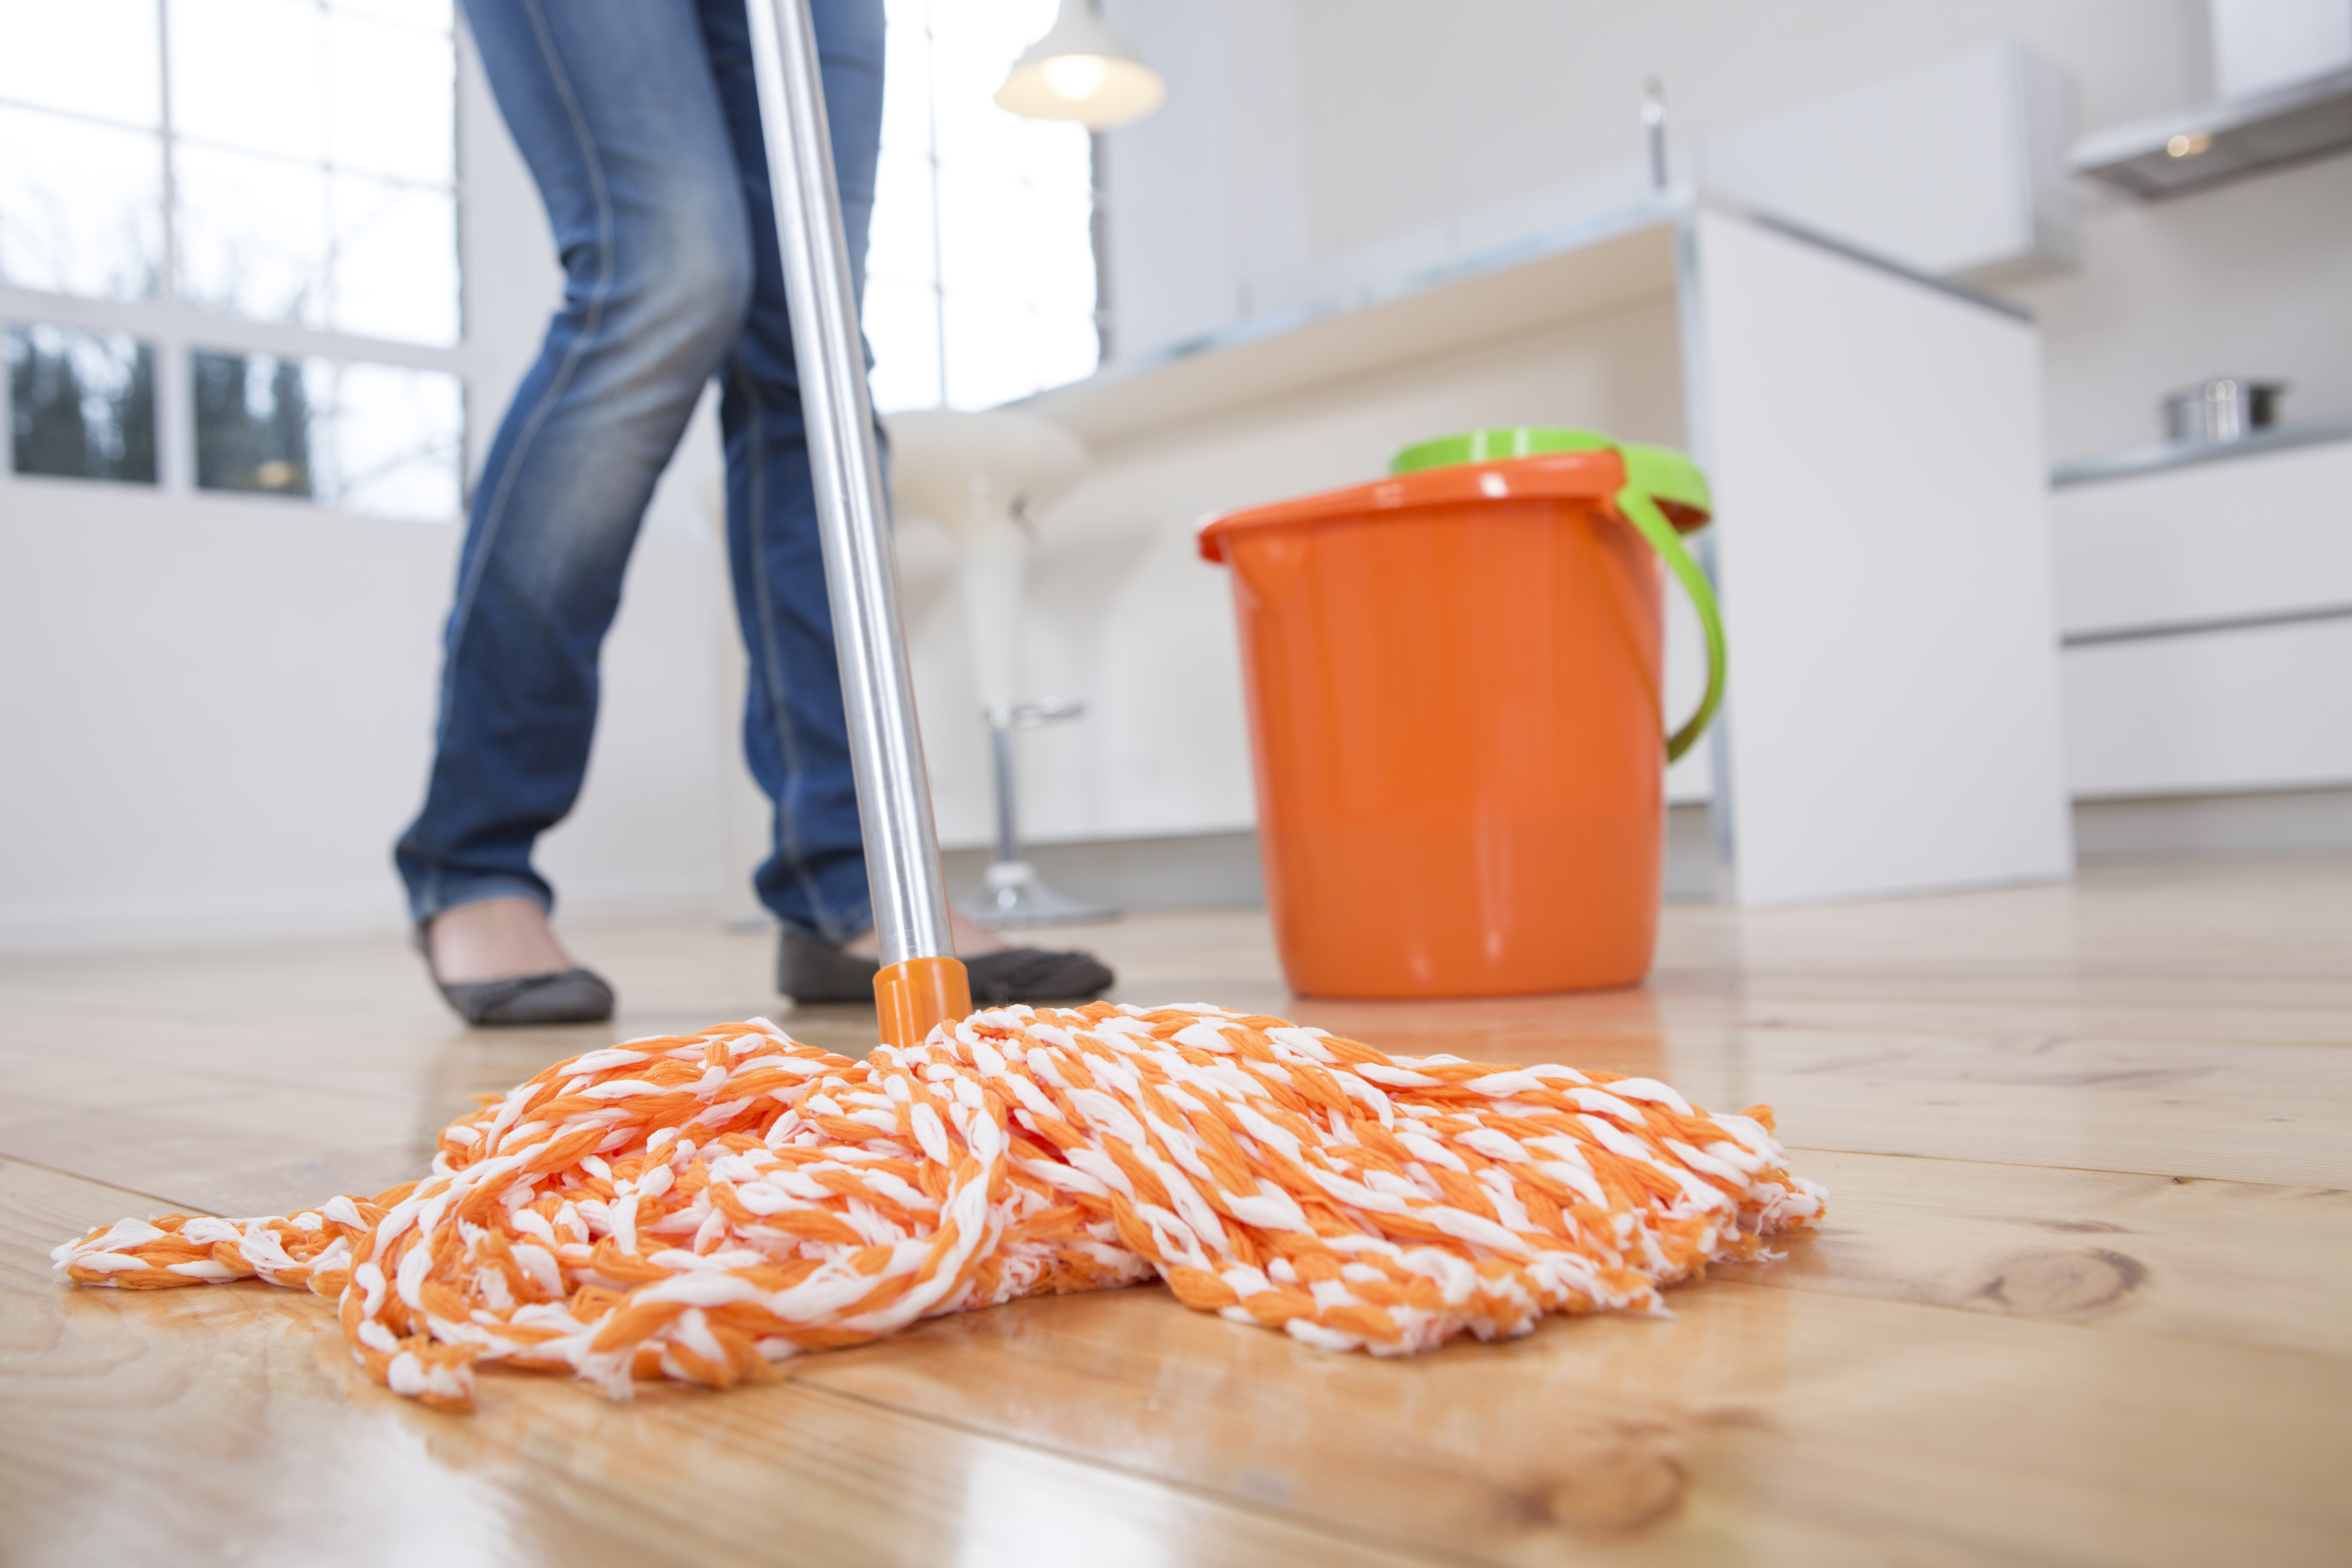 This 3-Ingredient Essential Oil Hardwood Floor Cleaner Will Make Your Space Immaculate